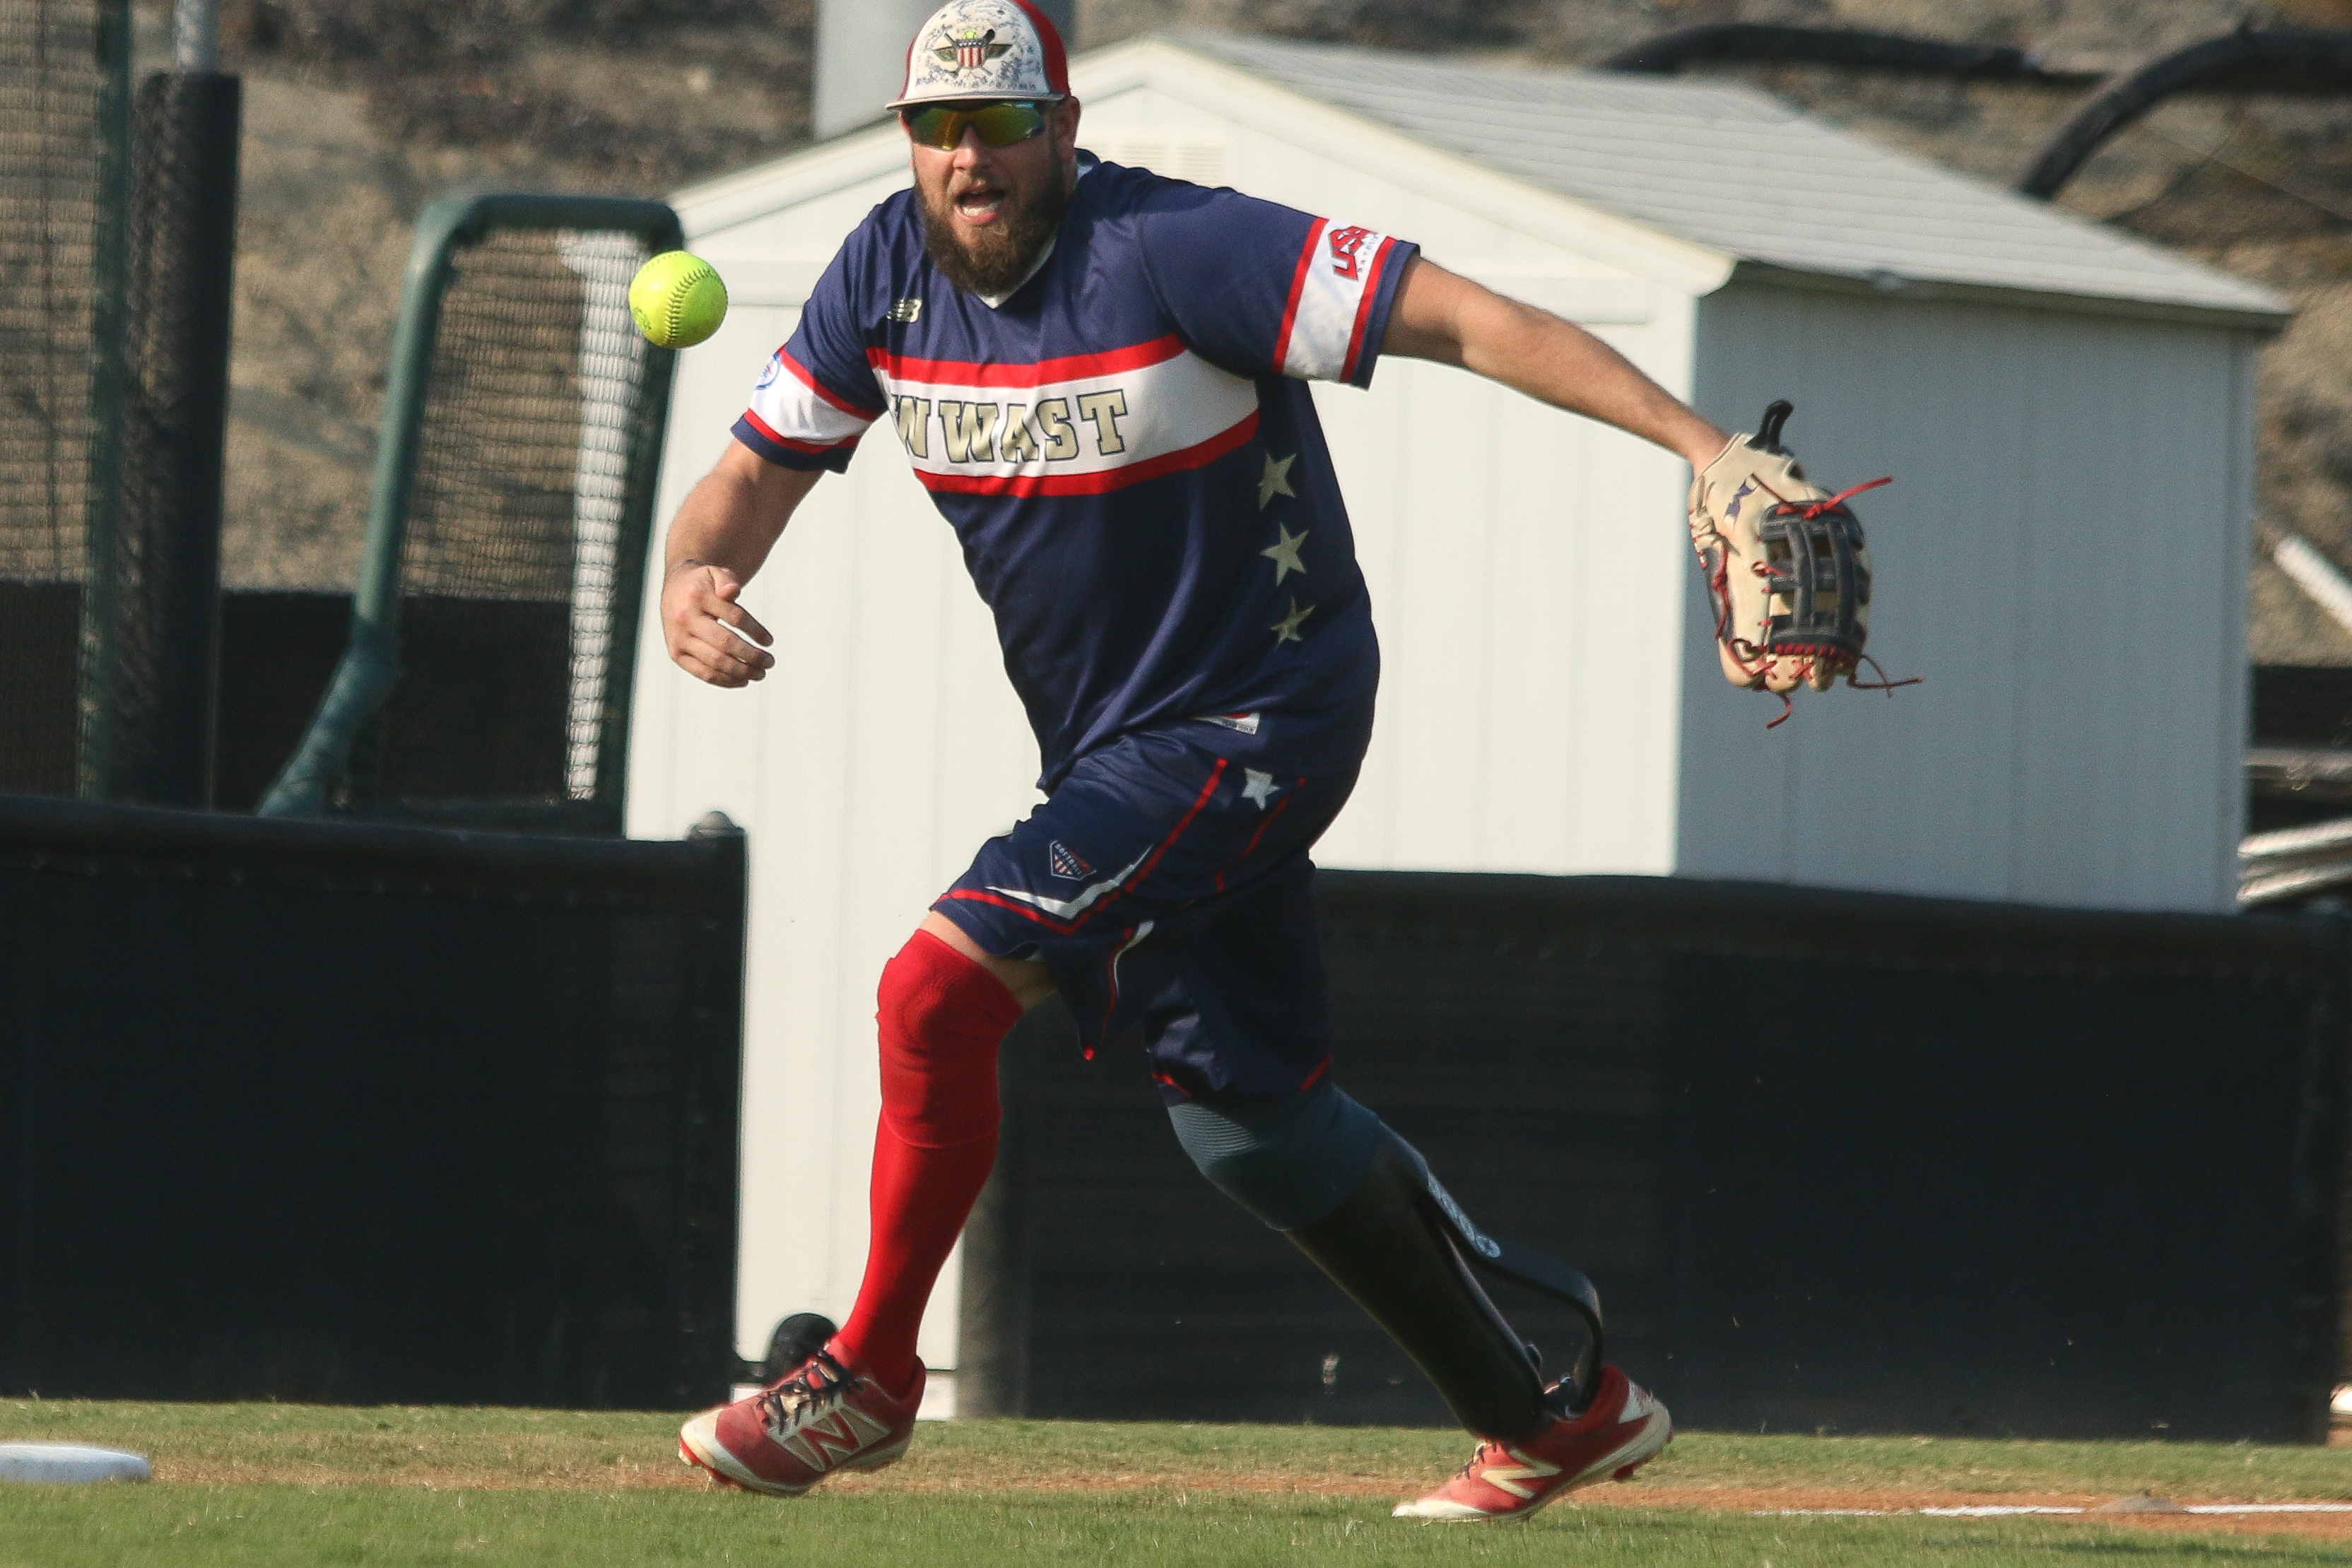 Cody Rice, of the Wounded Warrior Amputee Softball Team, makes a play on a ground ball during a game against the CHP Capistrano team on Saturday, Nov. 10, at Saddleback College. Rice was in the U.S. Army and had part of his right leg removed after stepping on an IED while touring in Afghanistan with the U.S. Army in 2012.